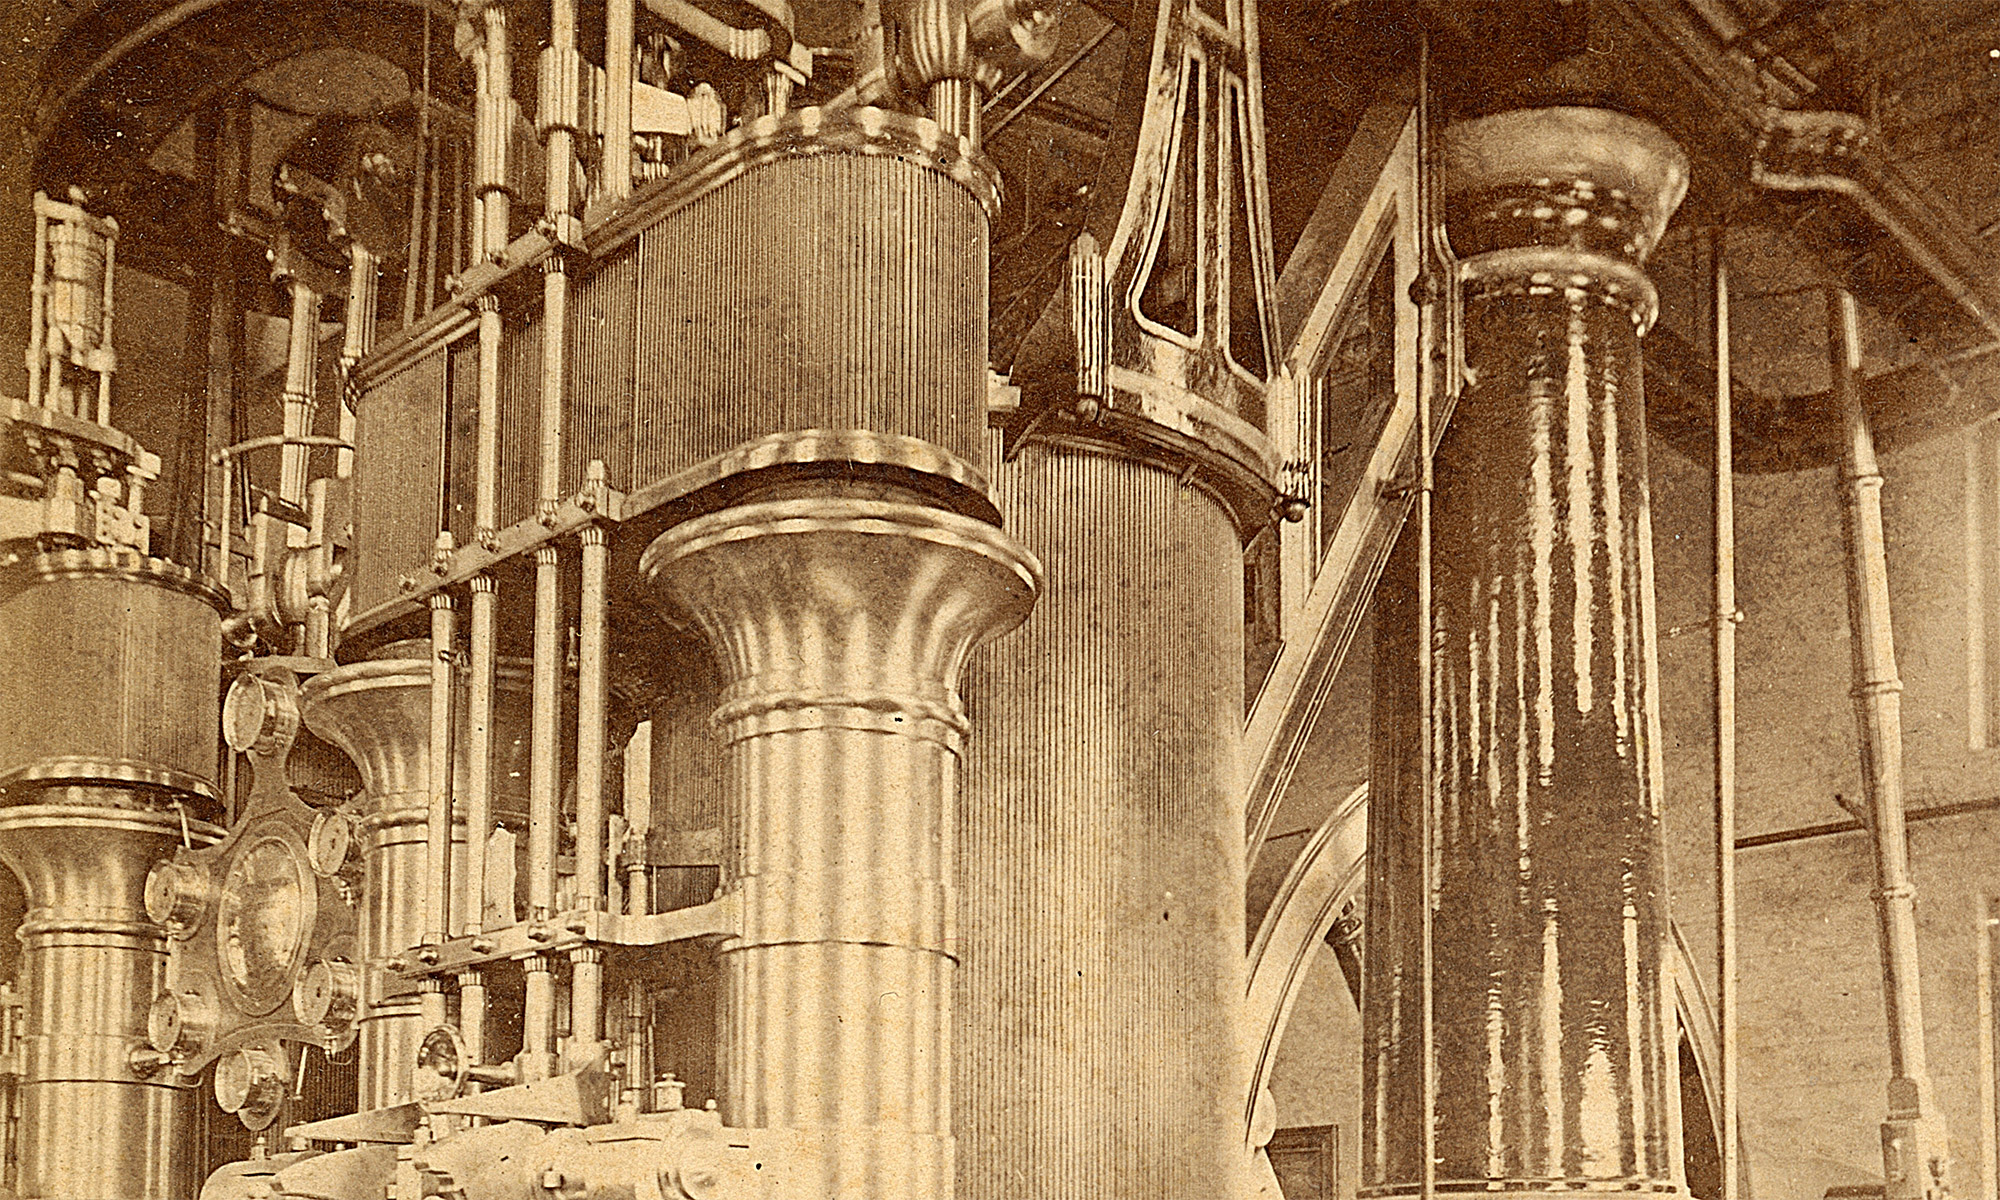 One-shot #27: Interior of the Chicago Water Works Pumping Engine House in 1875